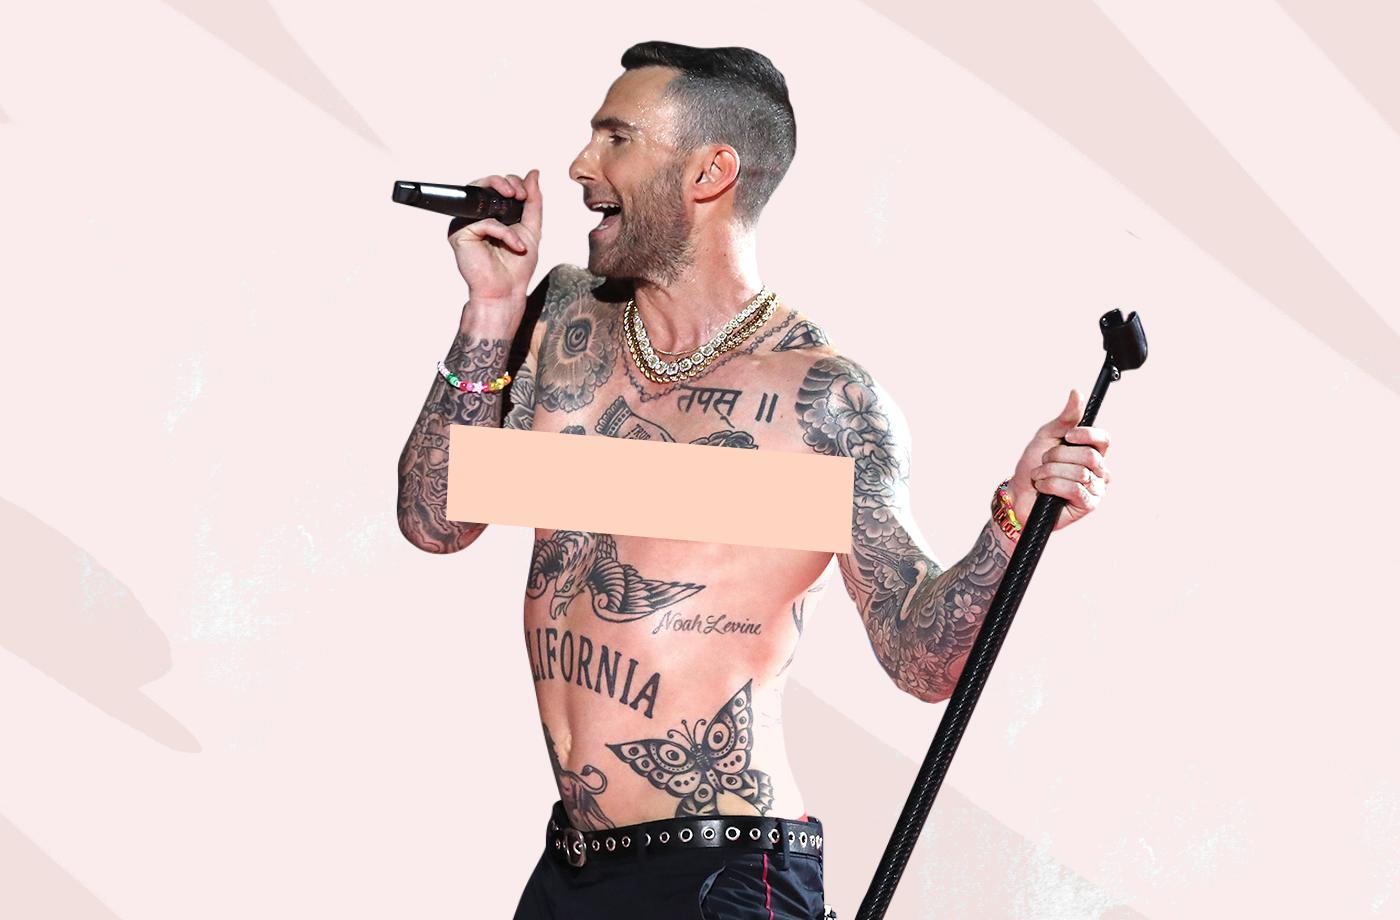 Thumbnail for Of course Adam Levine's nipple reveal wasn't shocking—that's precisely the issue